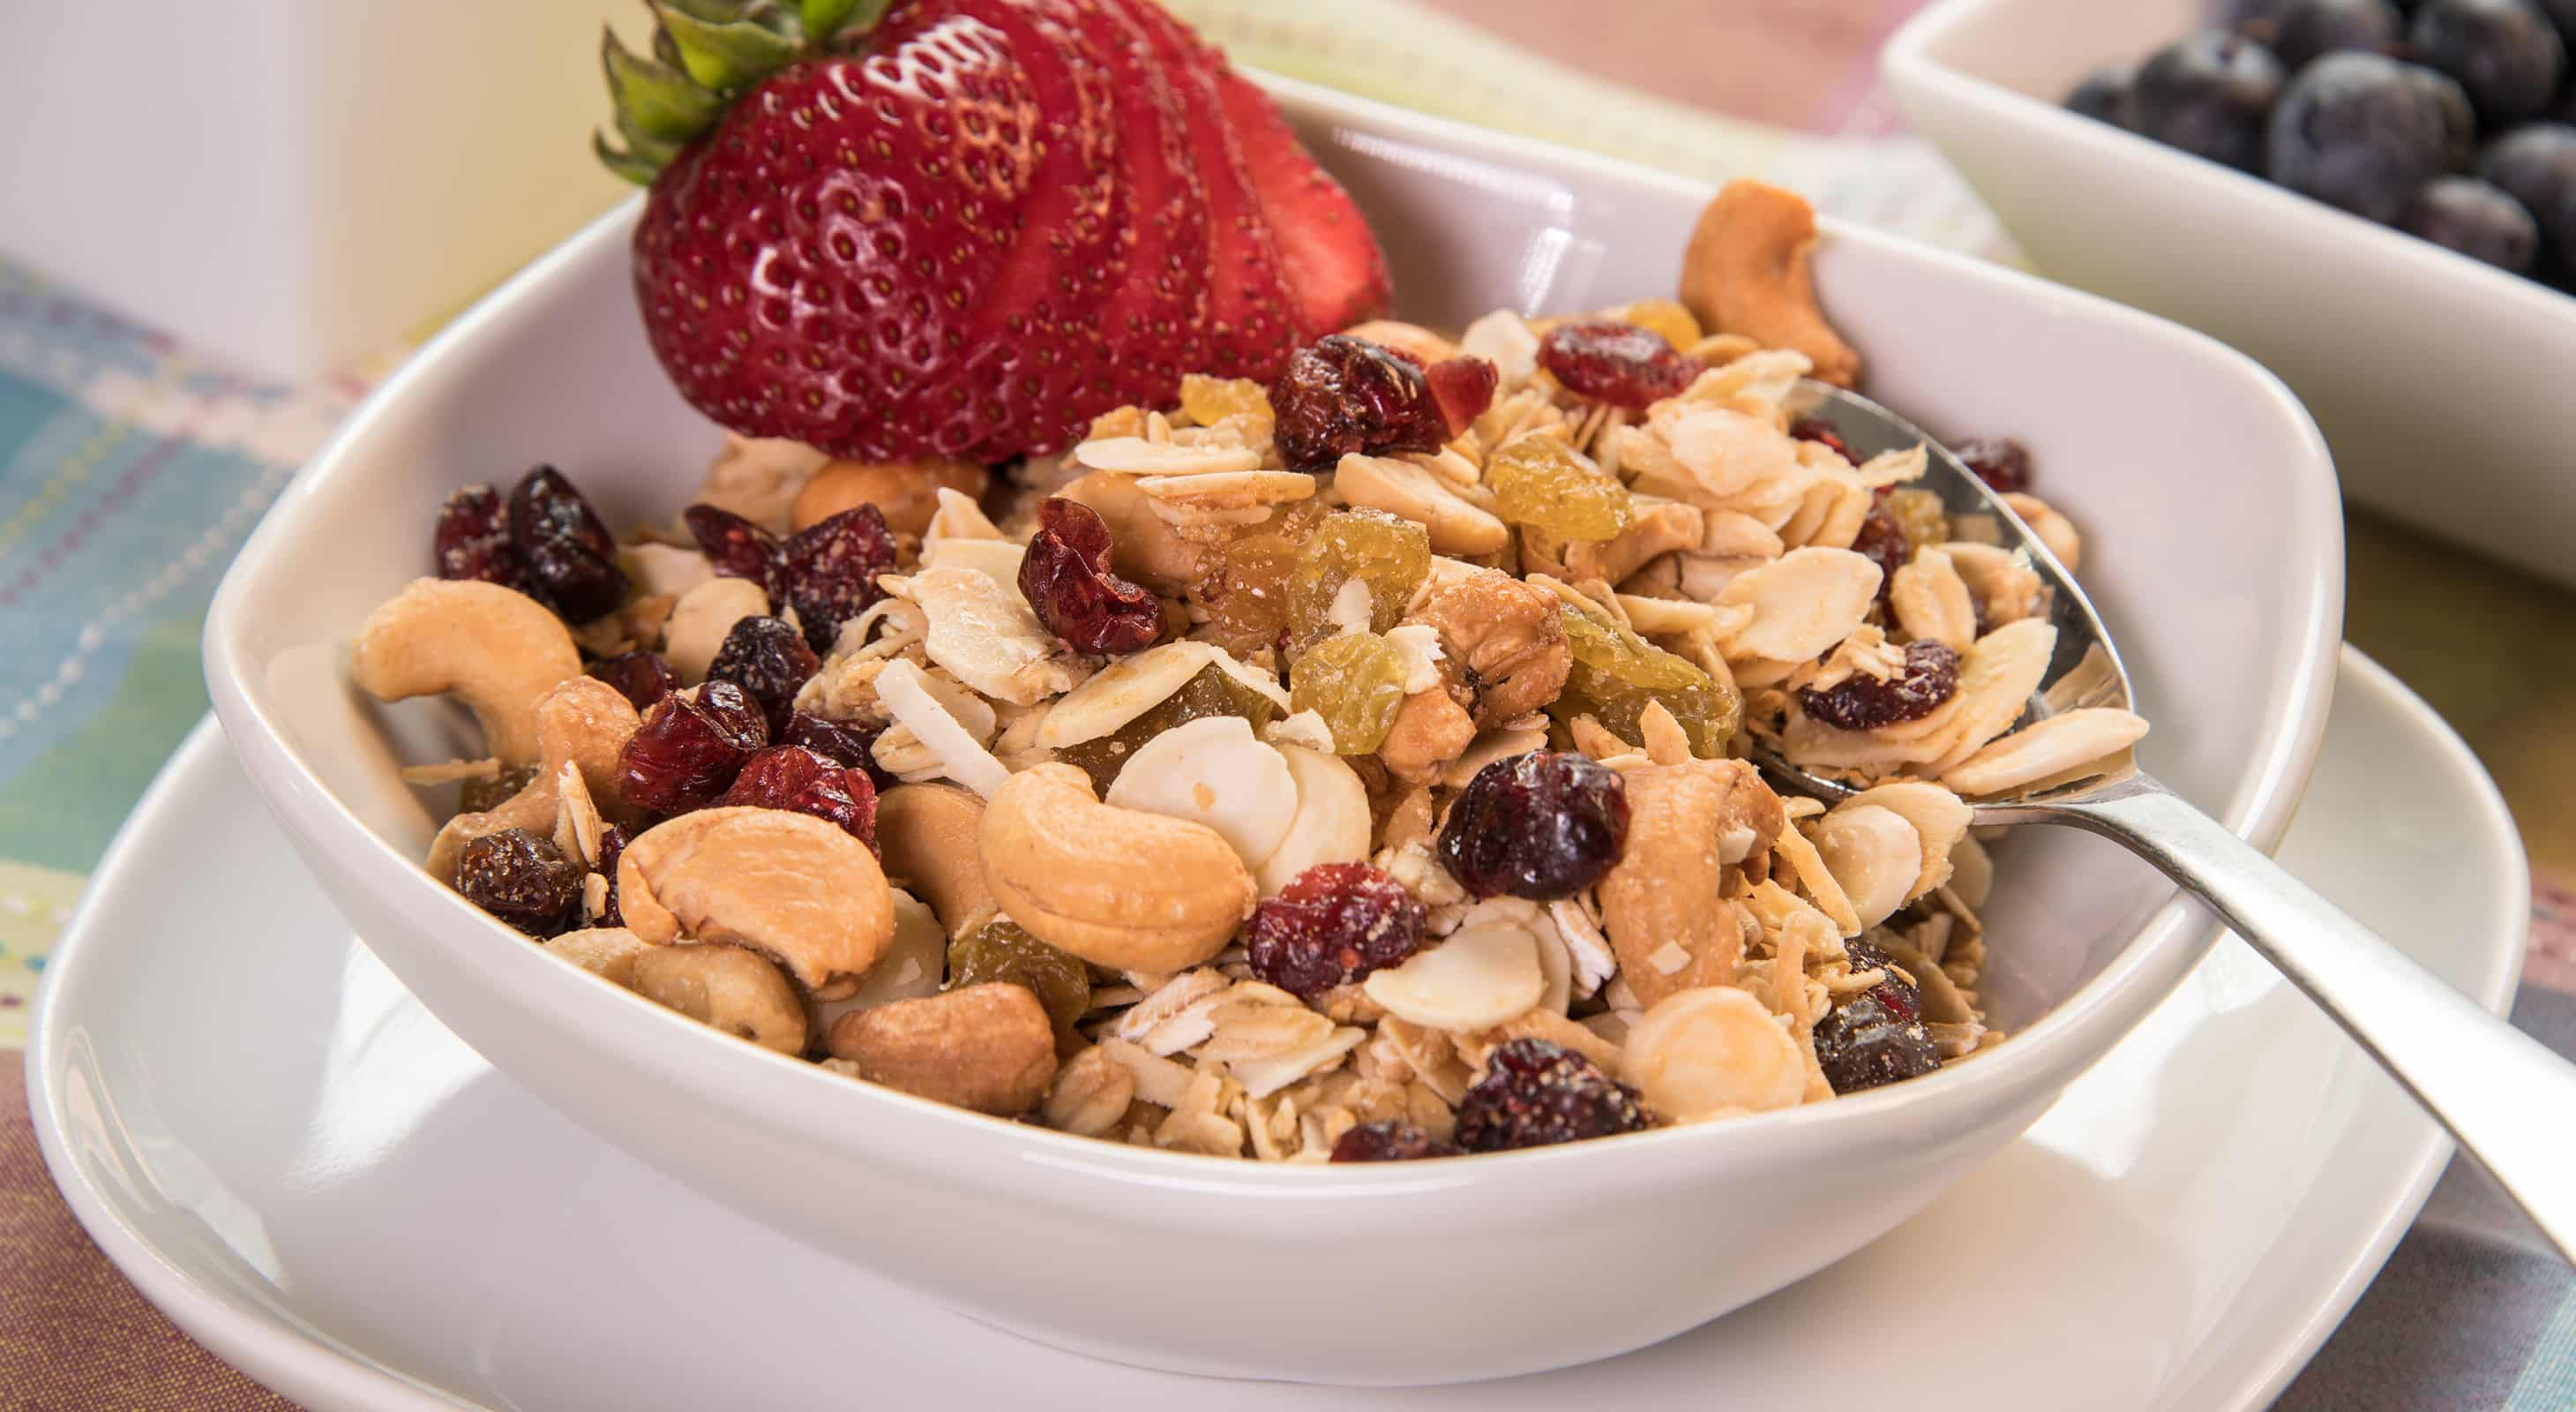 House-made granola with fruit